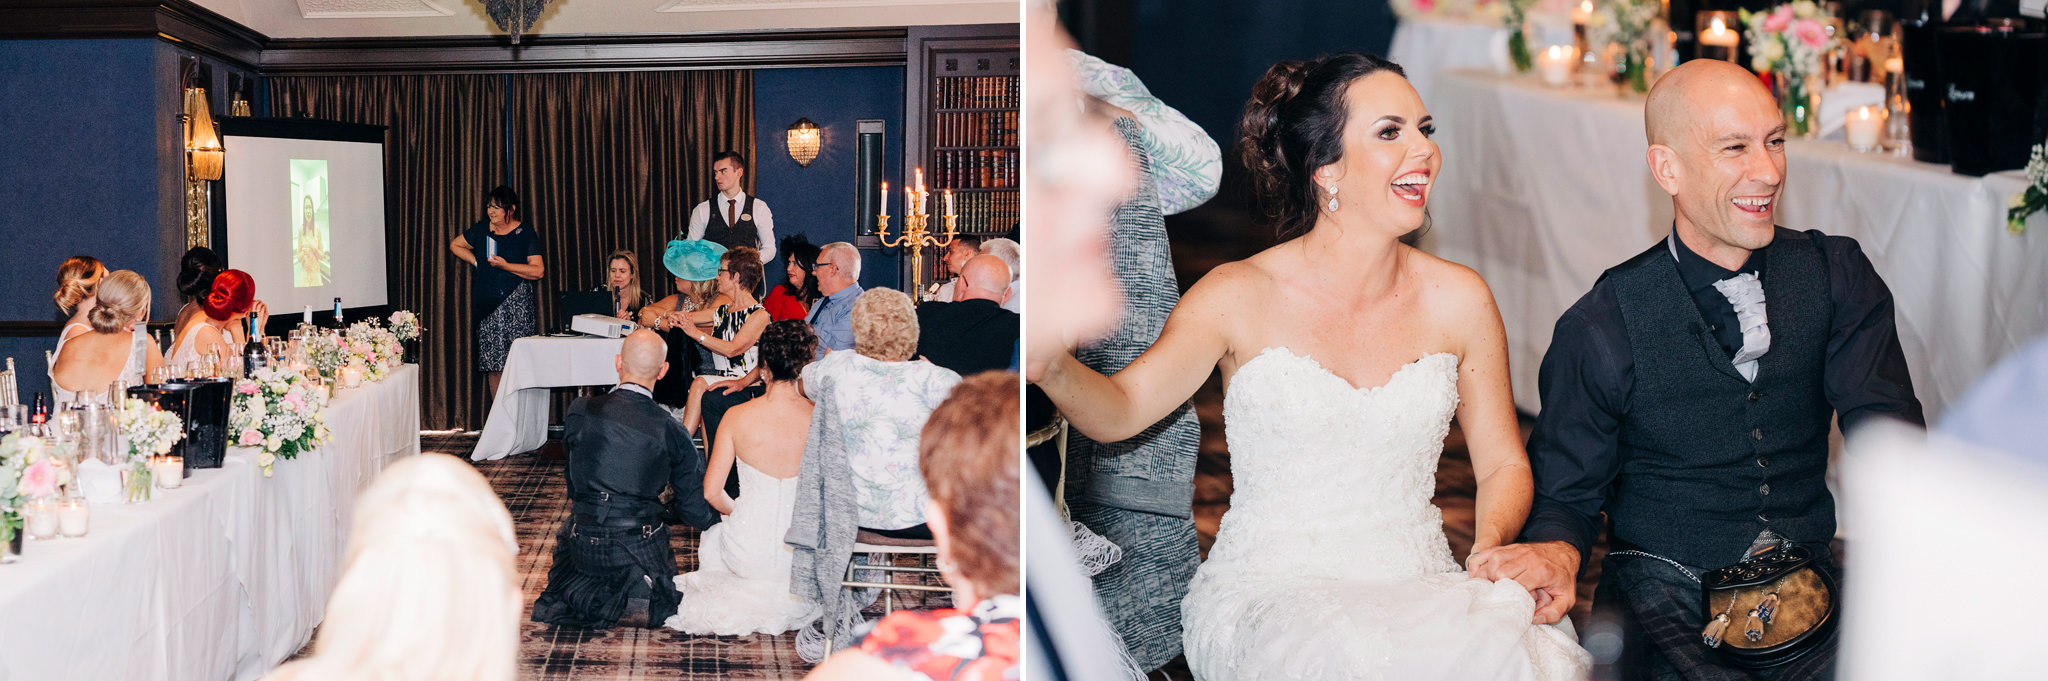 cornhill castle wedding photography